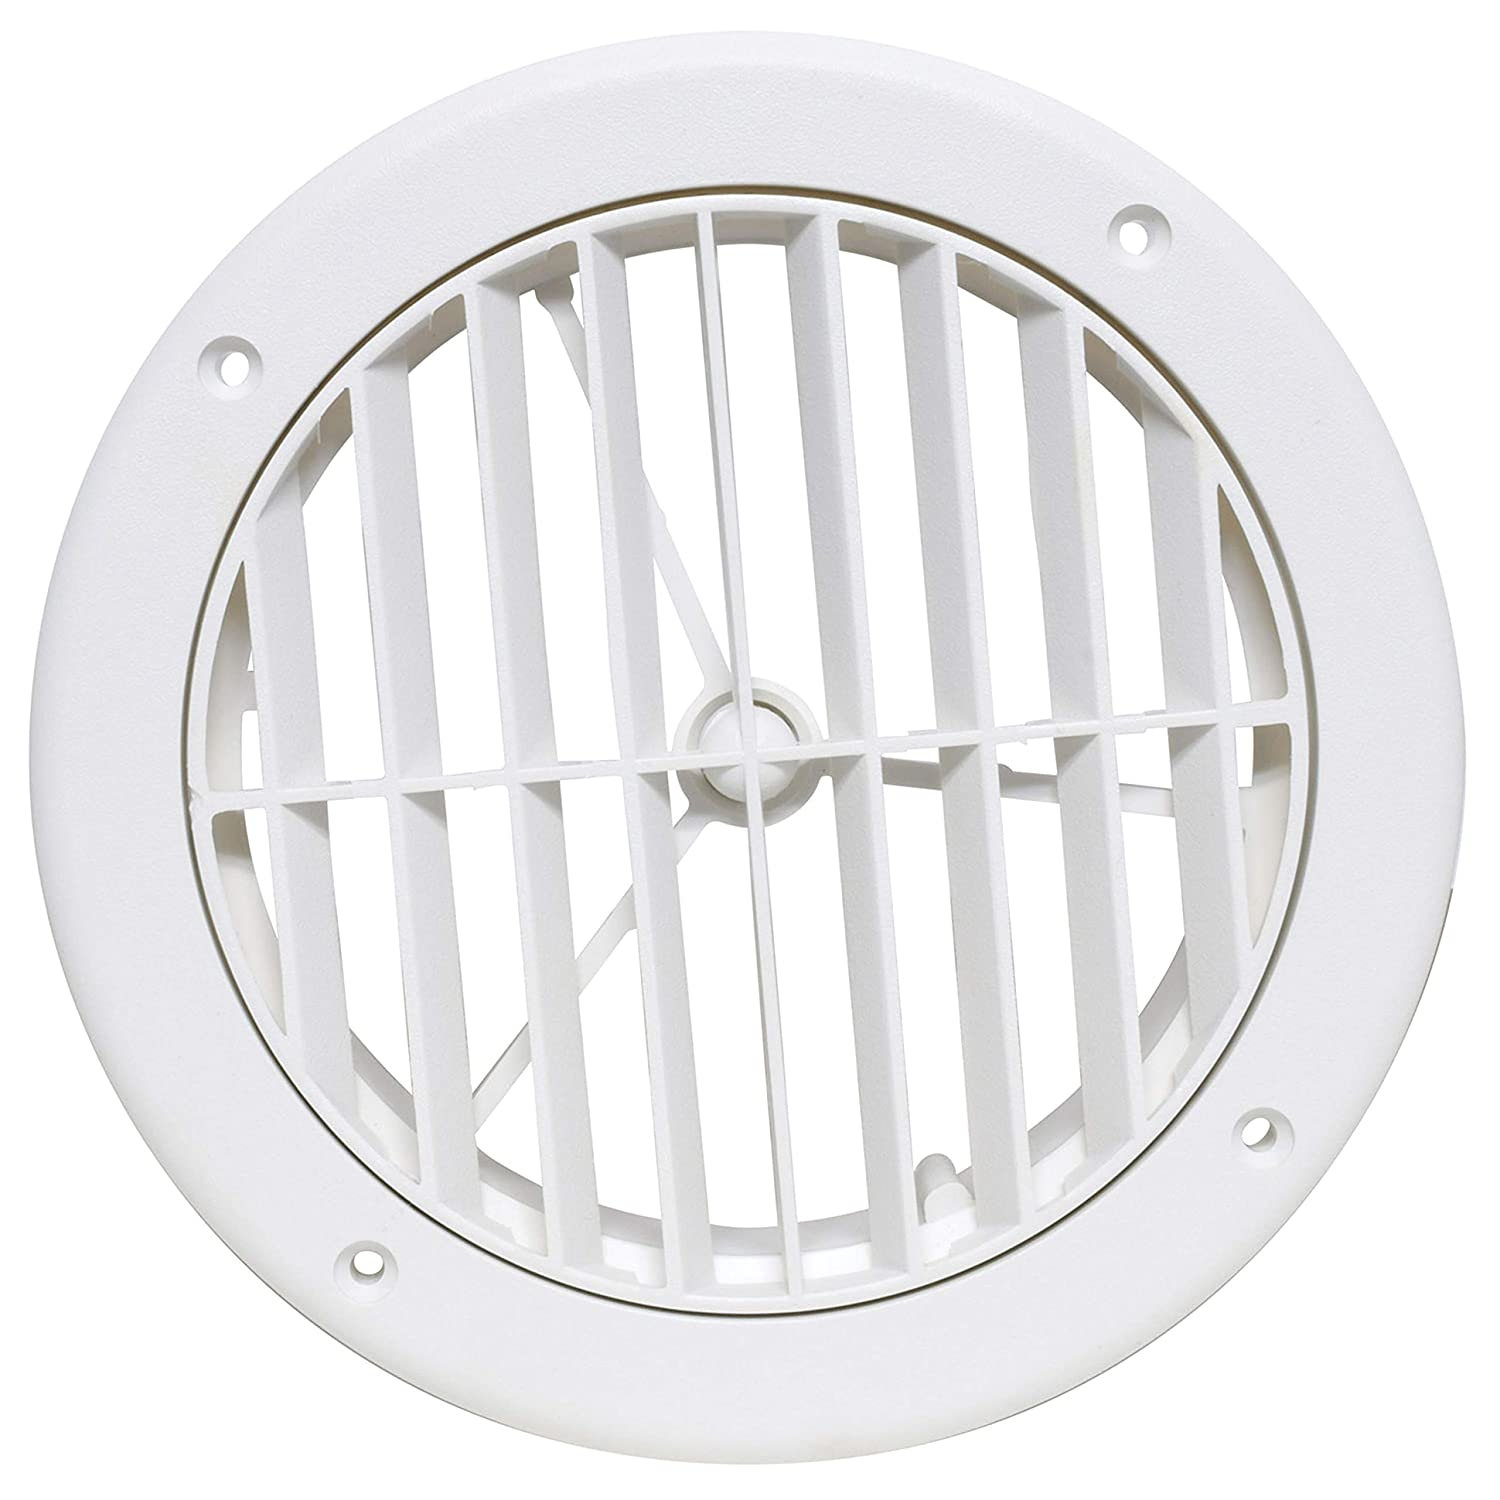 Valterra A10-3363VP White Rotating Heat and A/C Register (5' ID, 1-1/8' Collar Extension) 1-1/8 Collar Extension)